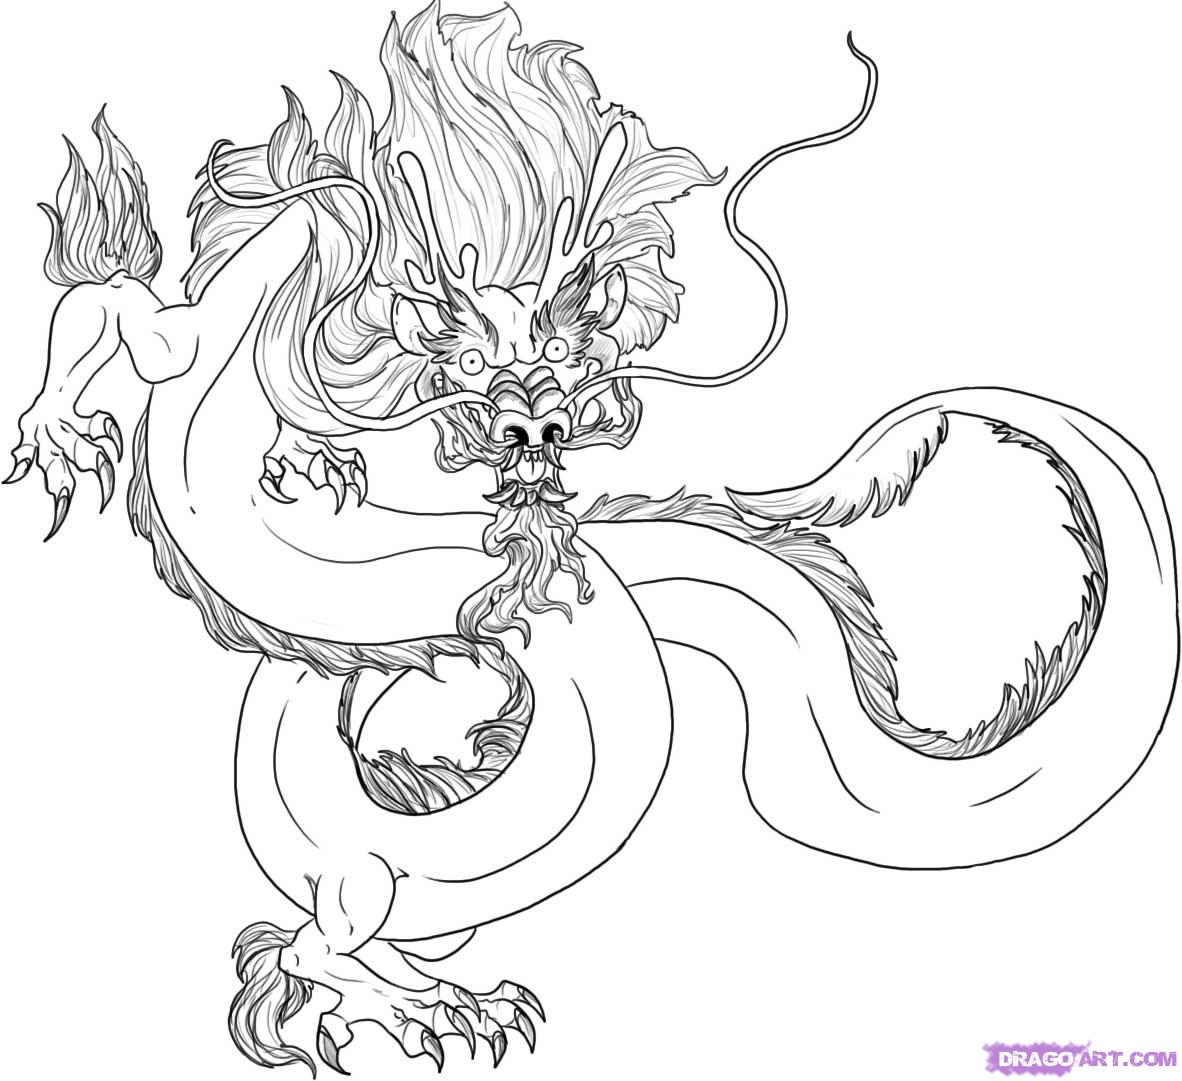 How To Draw A Traditional Chinese Dragon Step By Step